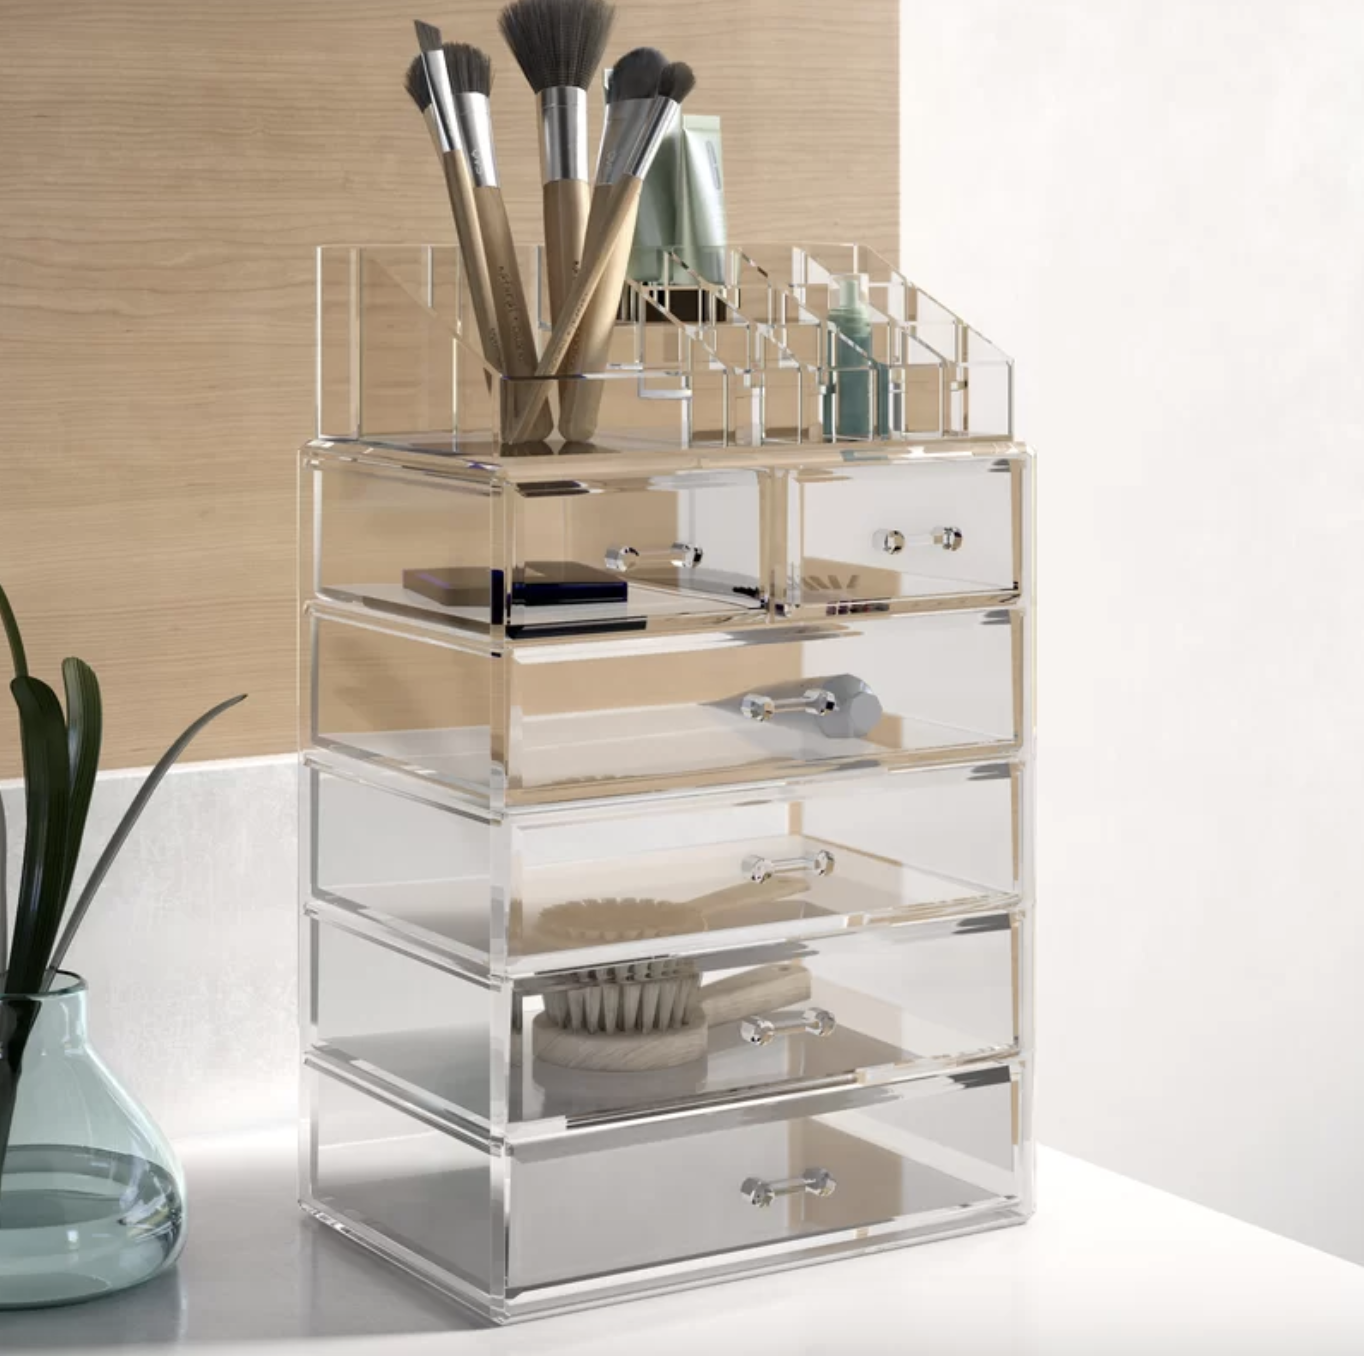 the clear organizer with some beauty products in the drawers and in the compartments on top